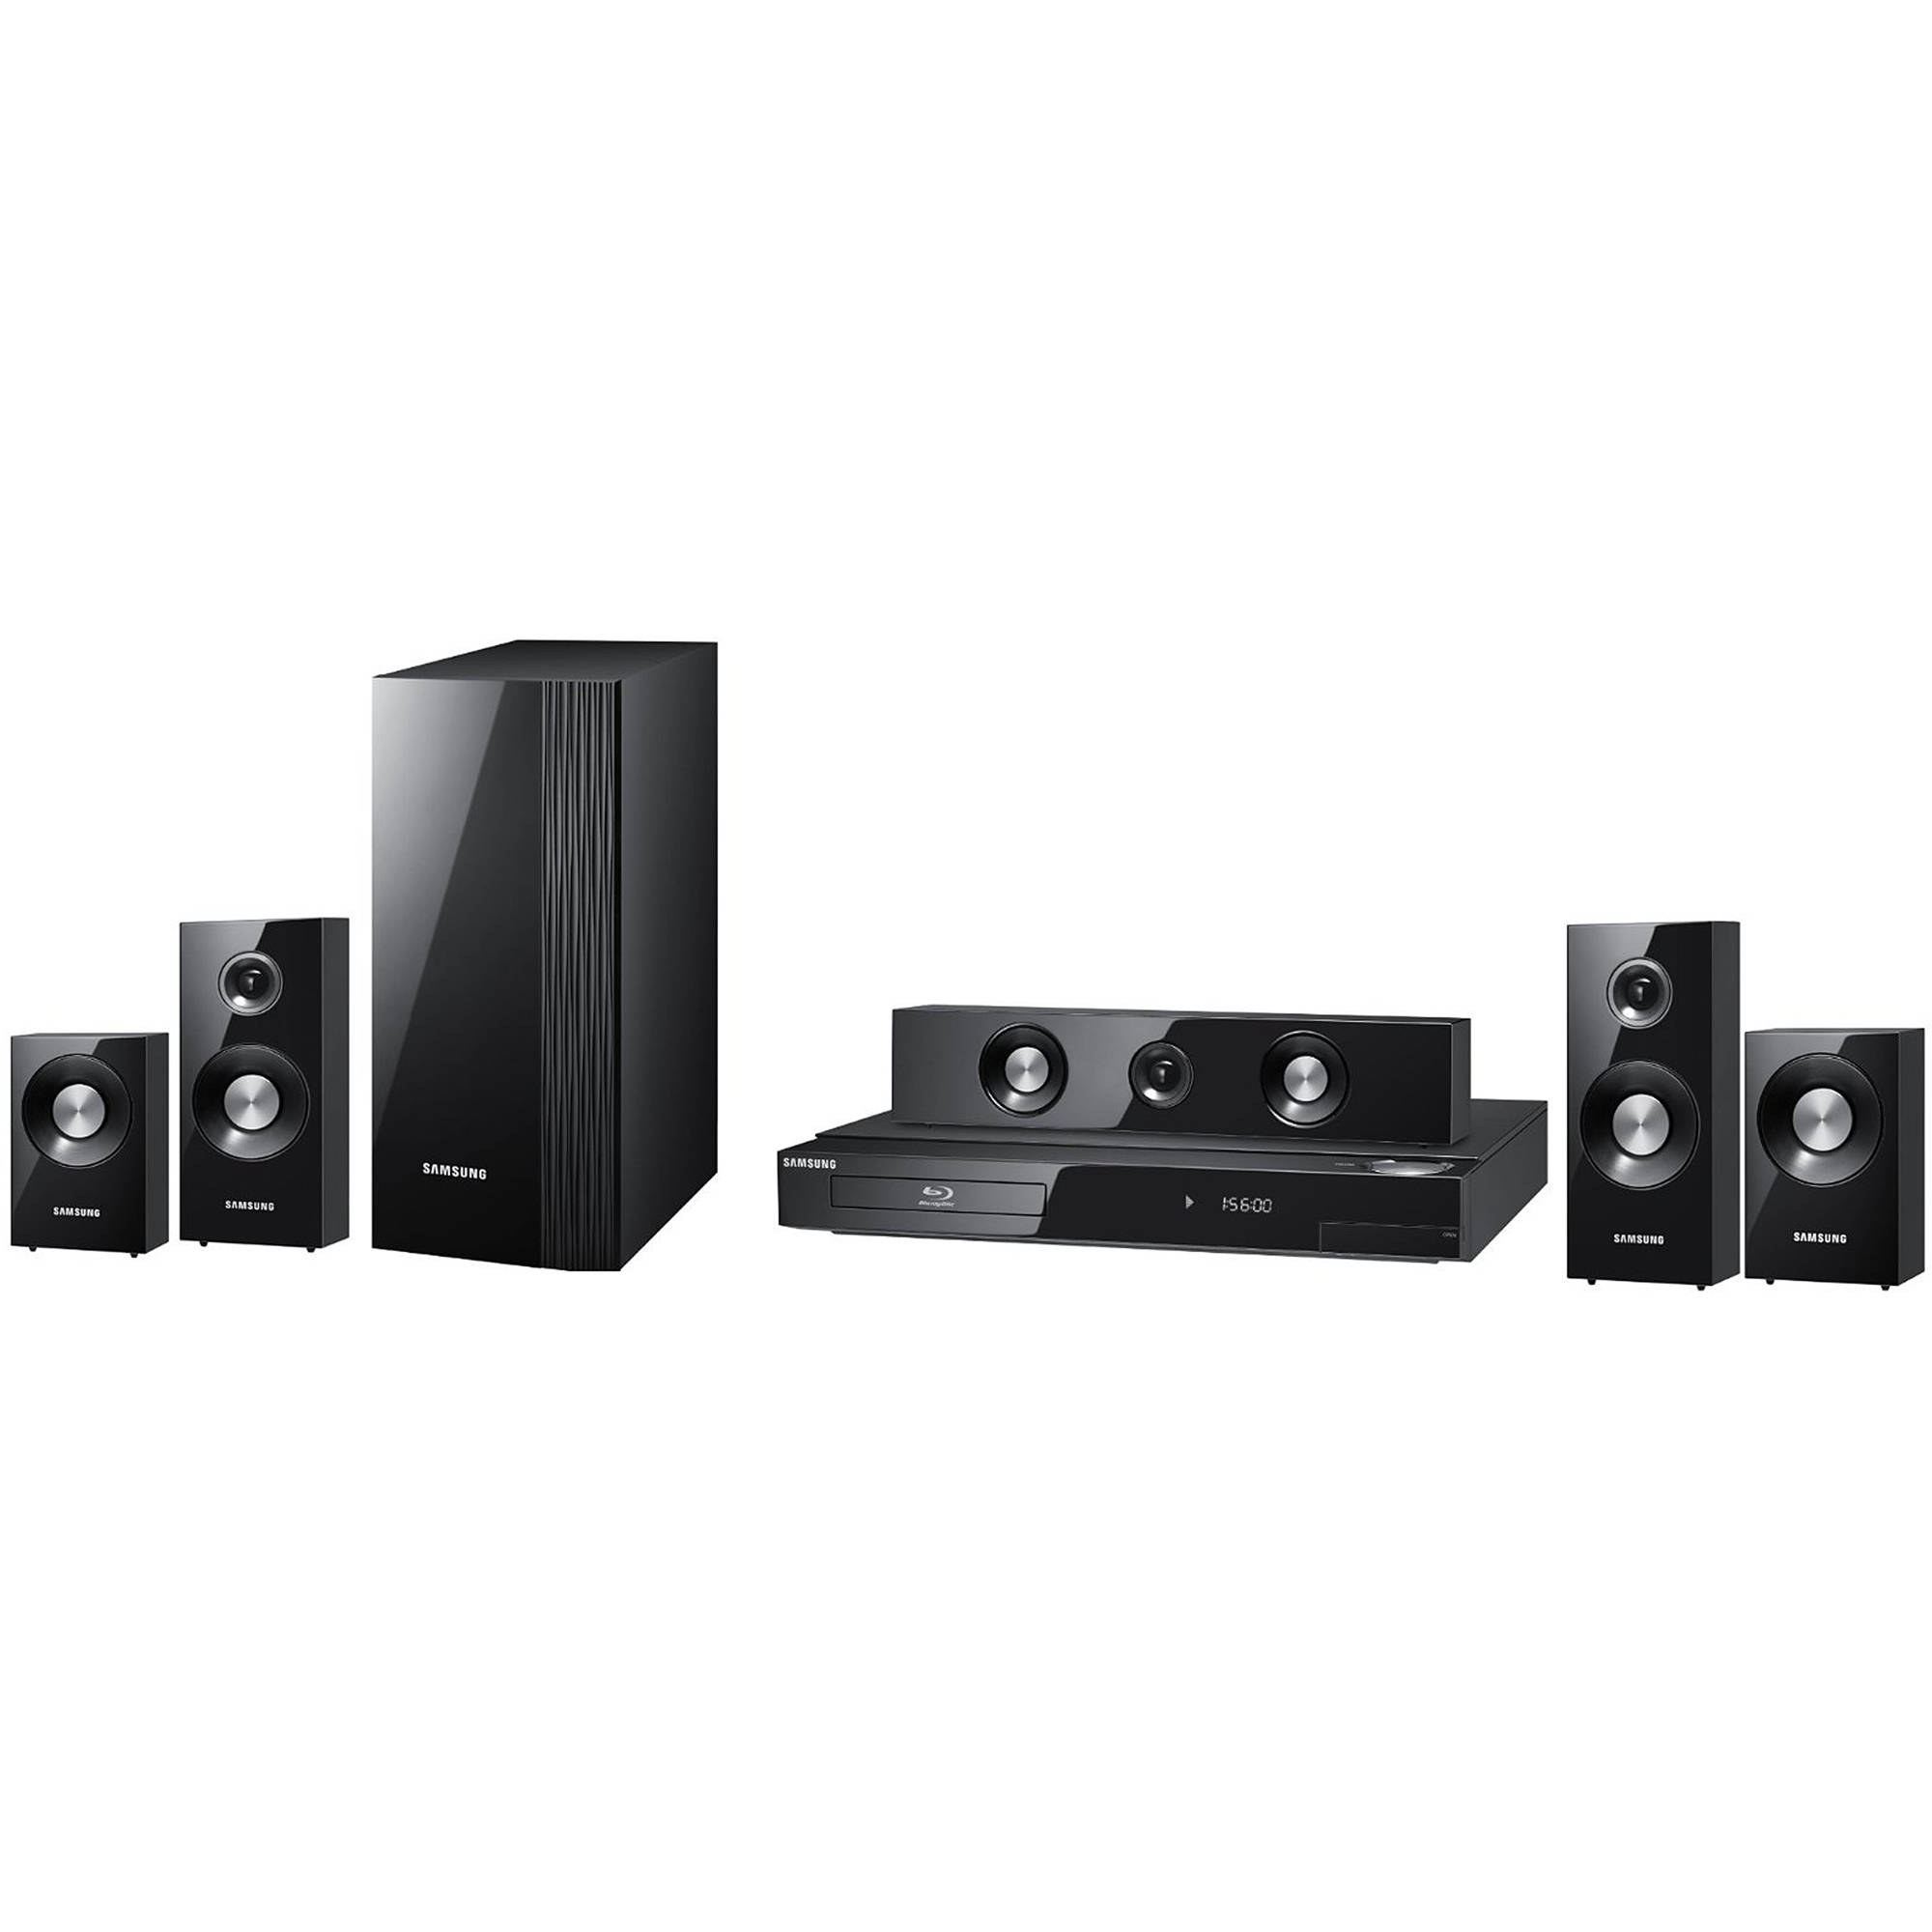 samsung blu ray 3d home theater system manual